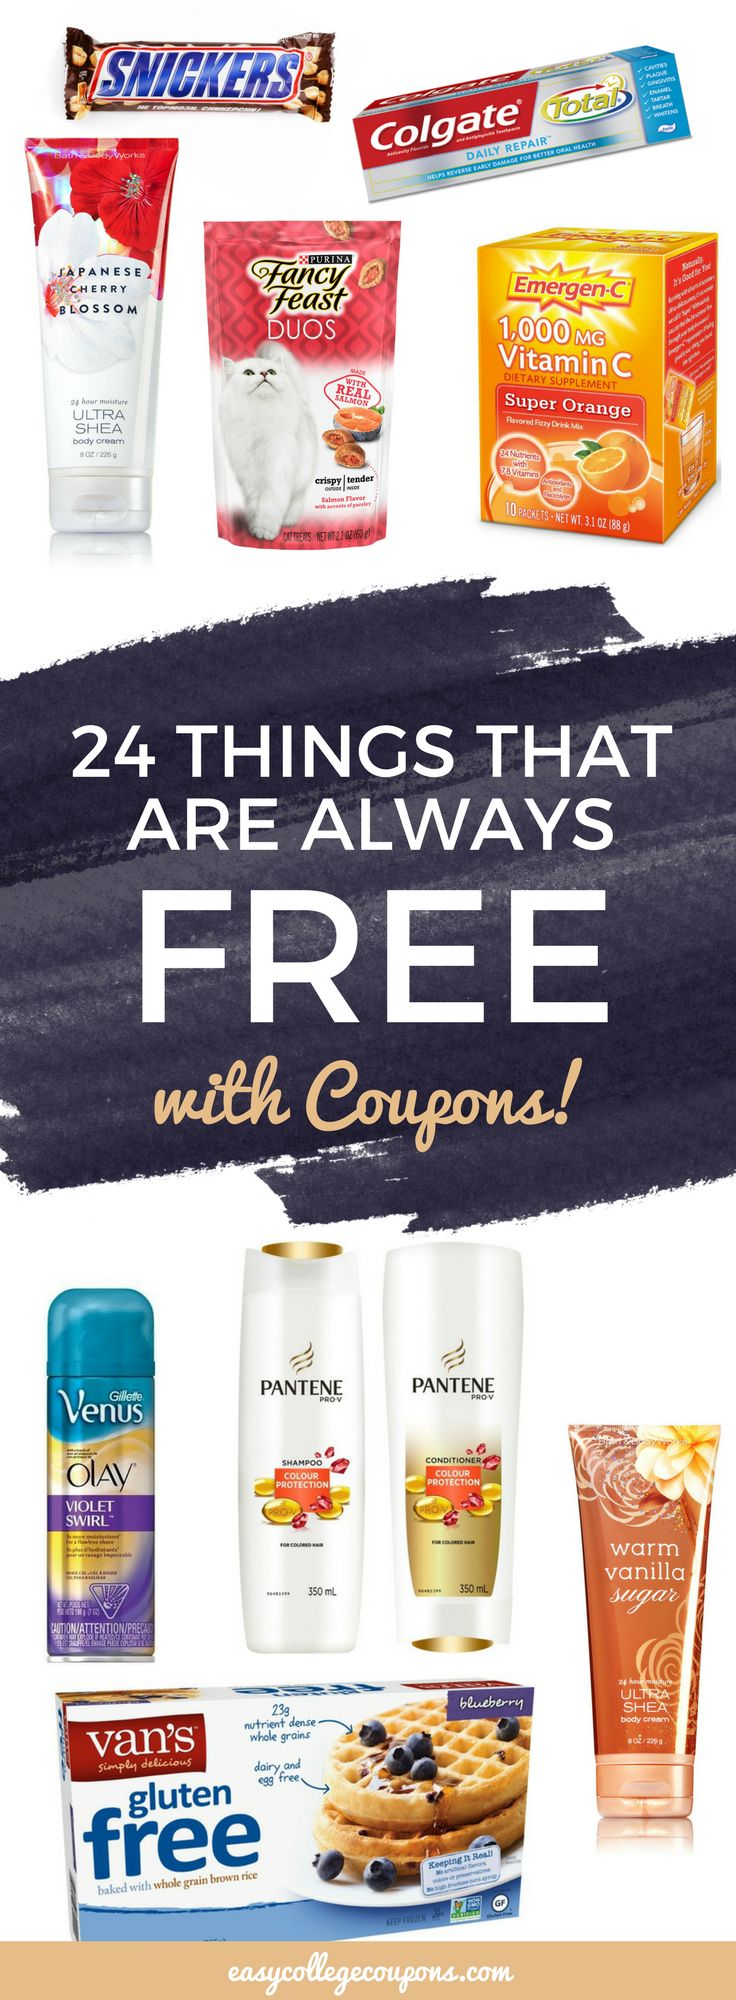 Things that are free with coupons | Free Stuff | Freebies | Couponing for Beginners | Save Money on Groceries or Make Up via @esycoupons